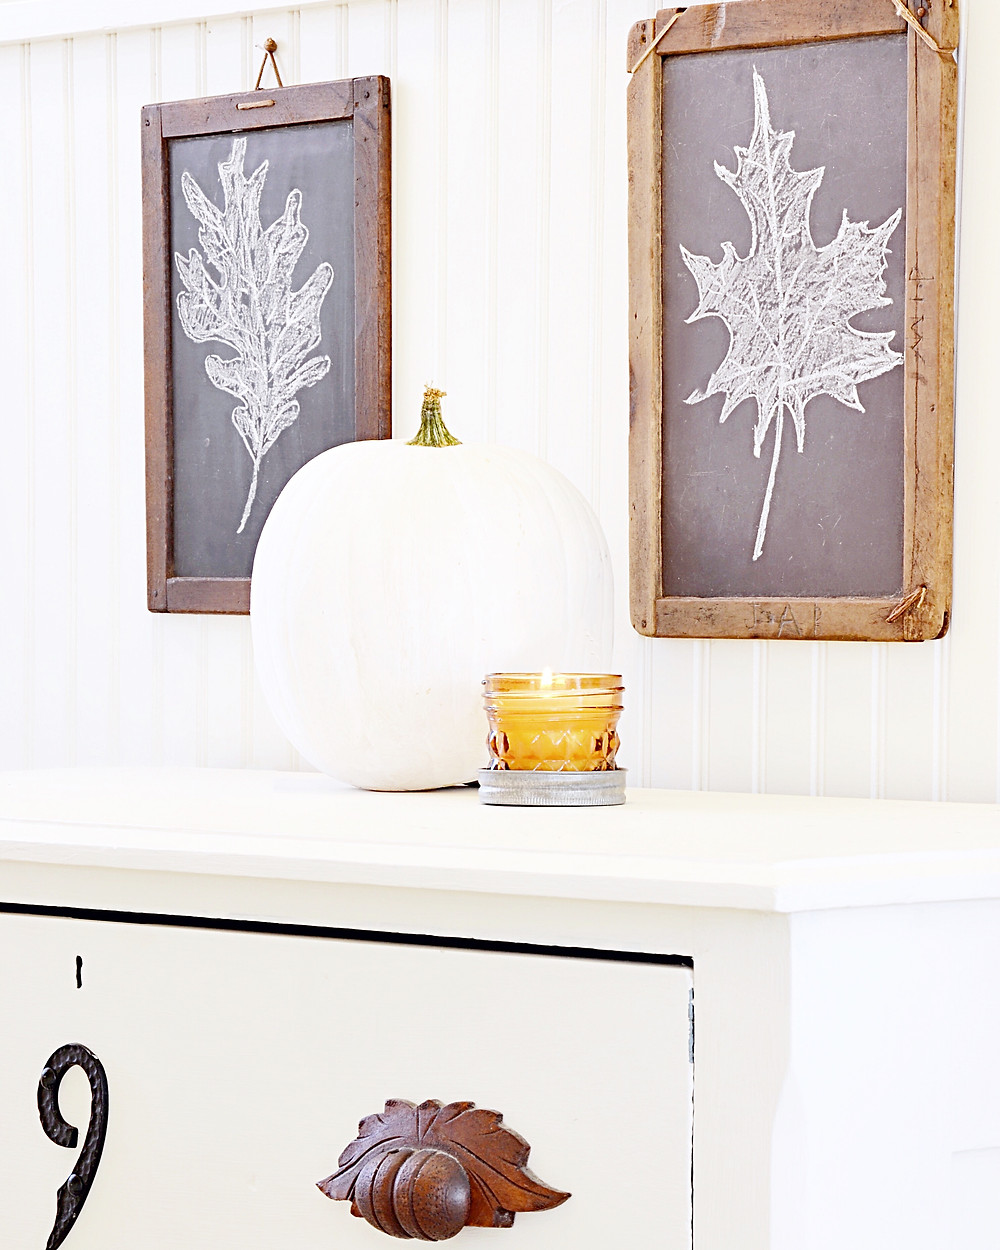 Antique children's chalkboards with fall decor.